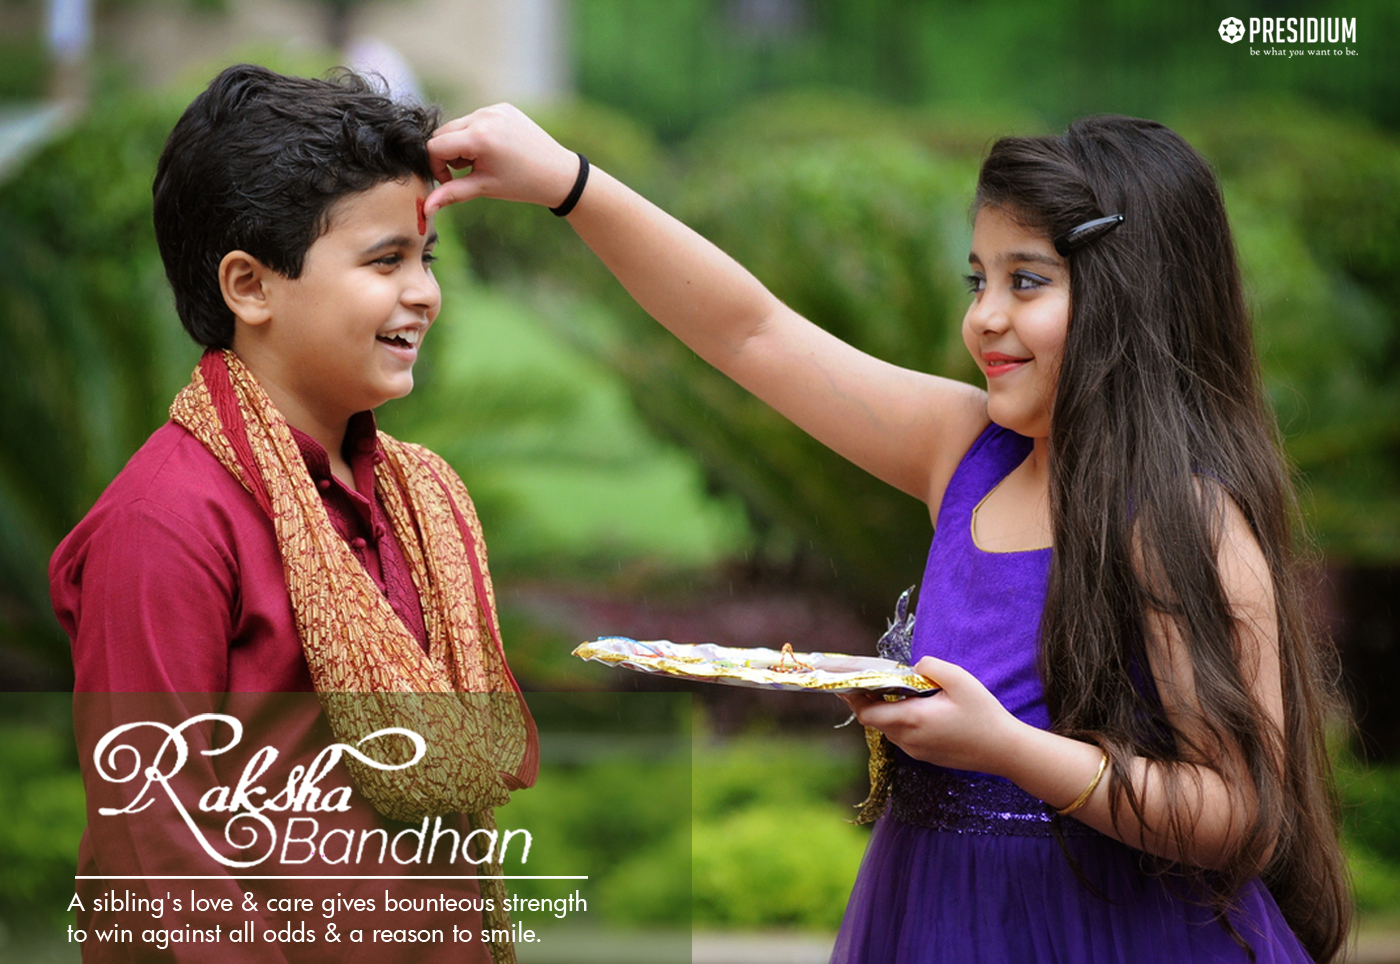 RAKSHABANDHAN CELEBRATION REJUVENATES THE CORRIDORS OF PRESIDIUM